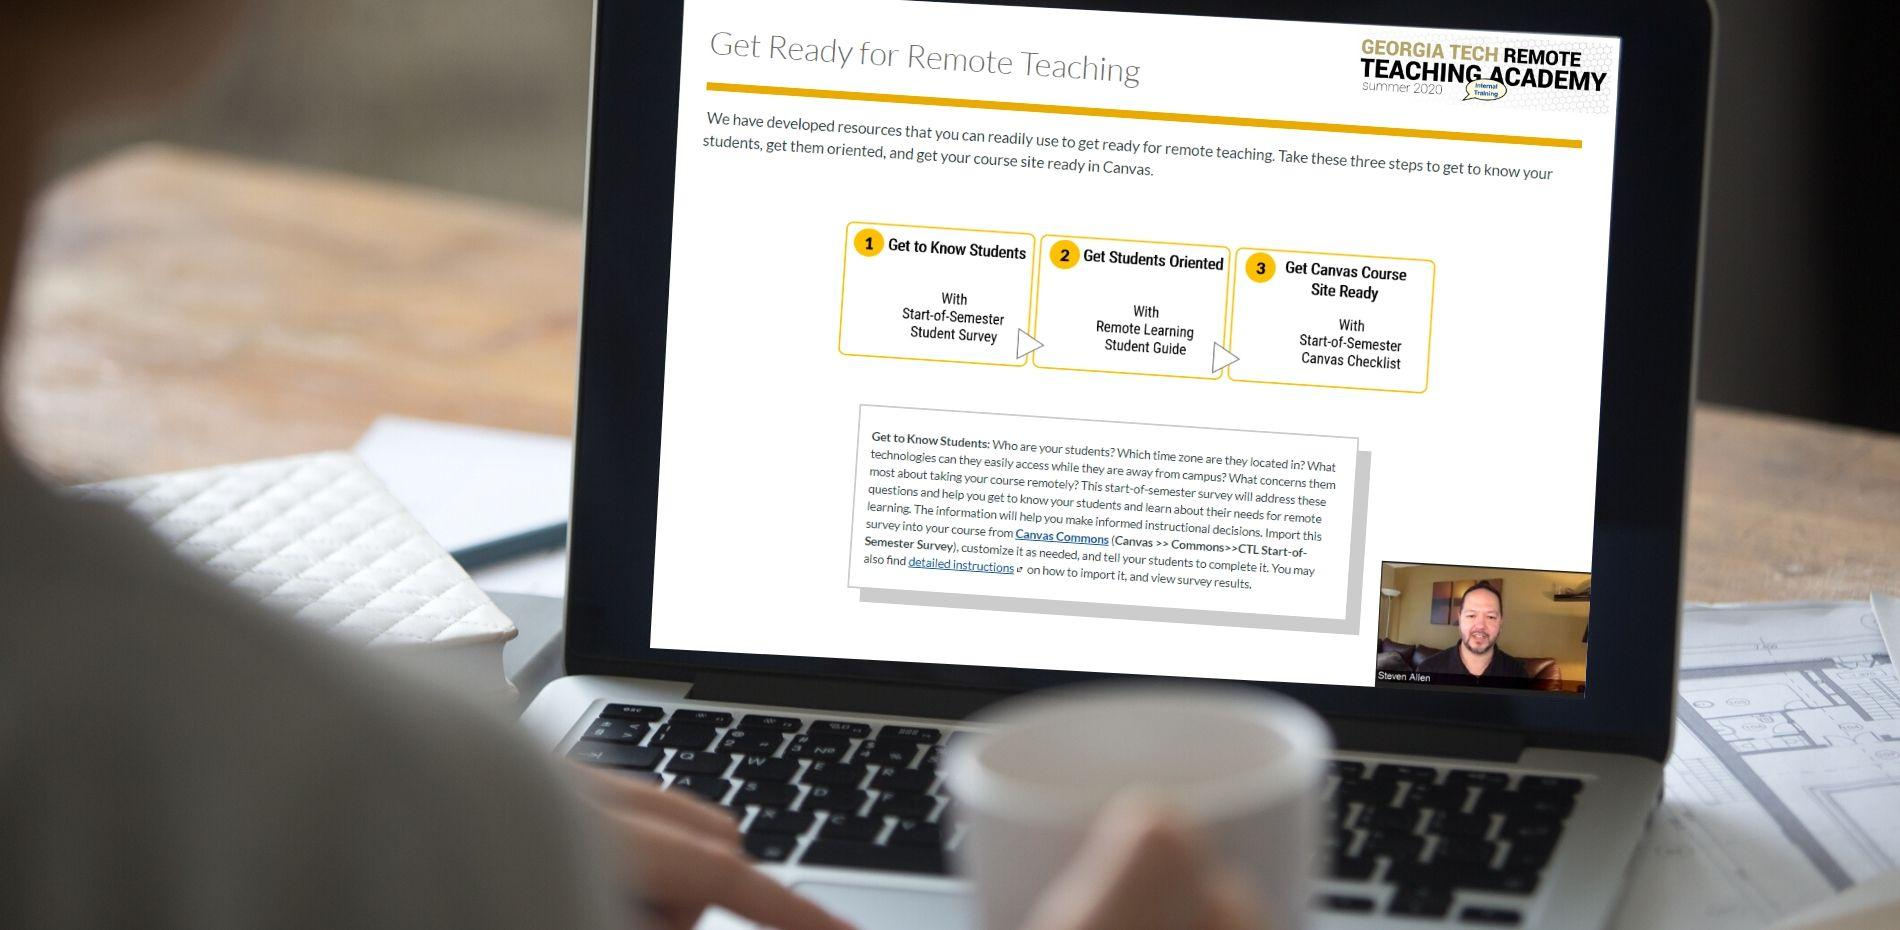 Laptop with remote teaching academy to prepare for remote instruction